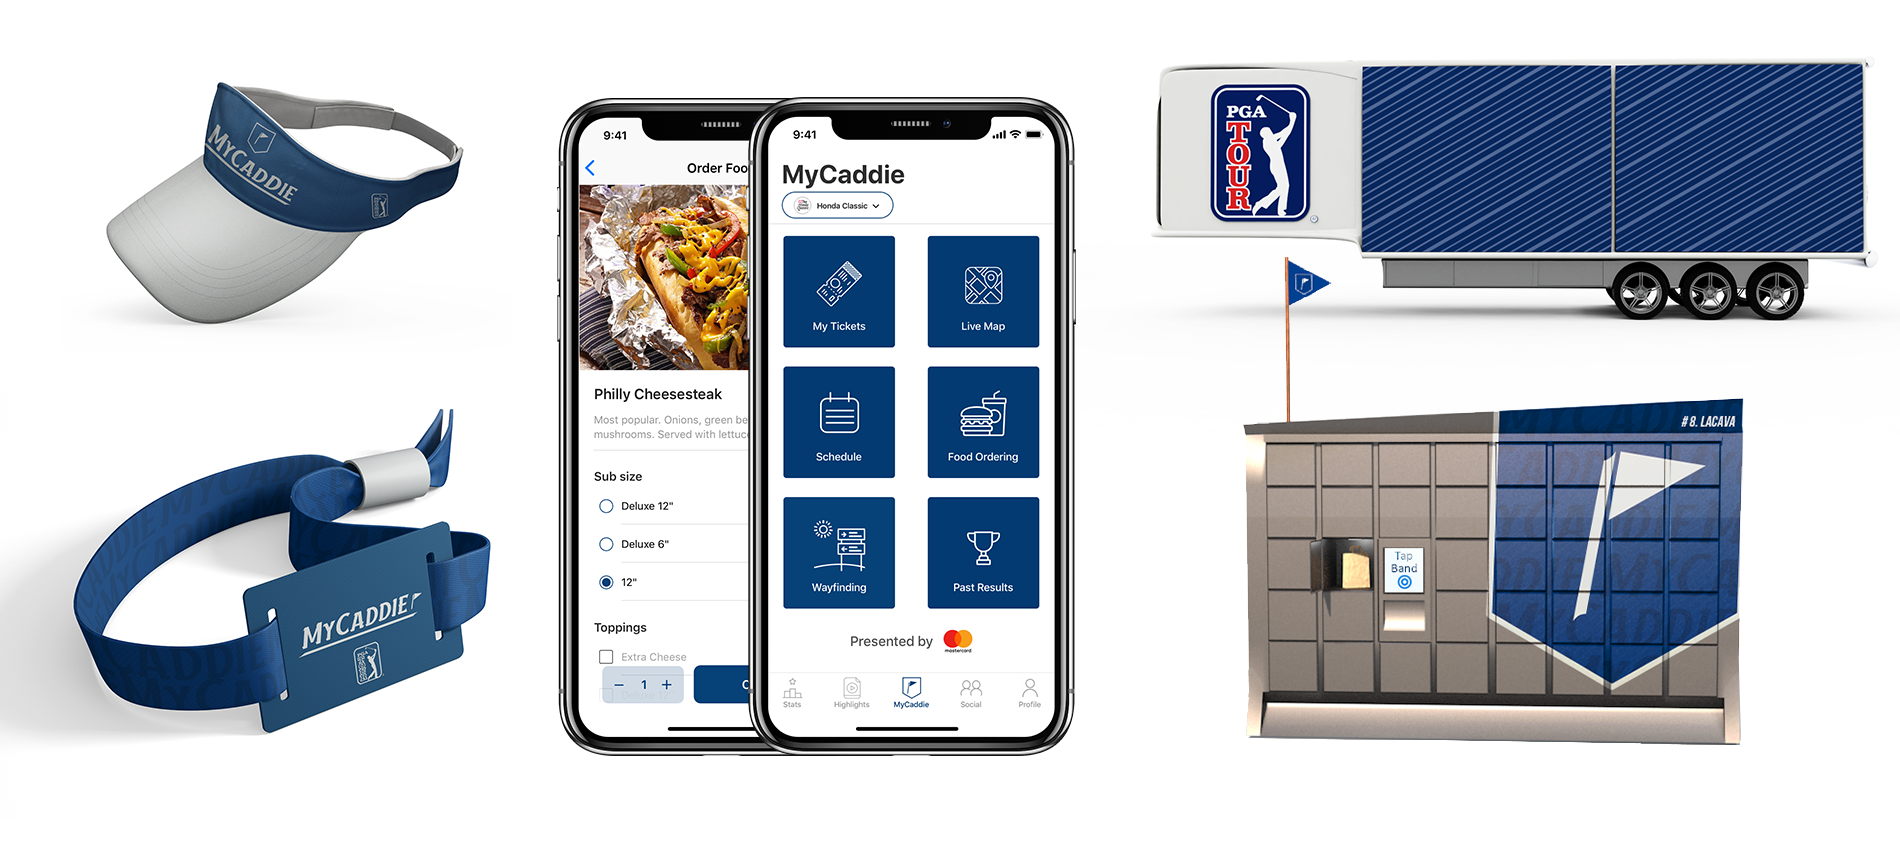 Various MyCaddie components, including an RFID band, app, locker, trailer and hat.